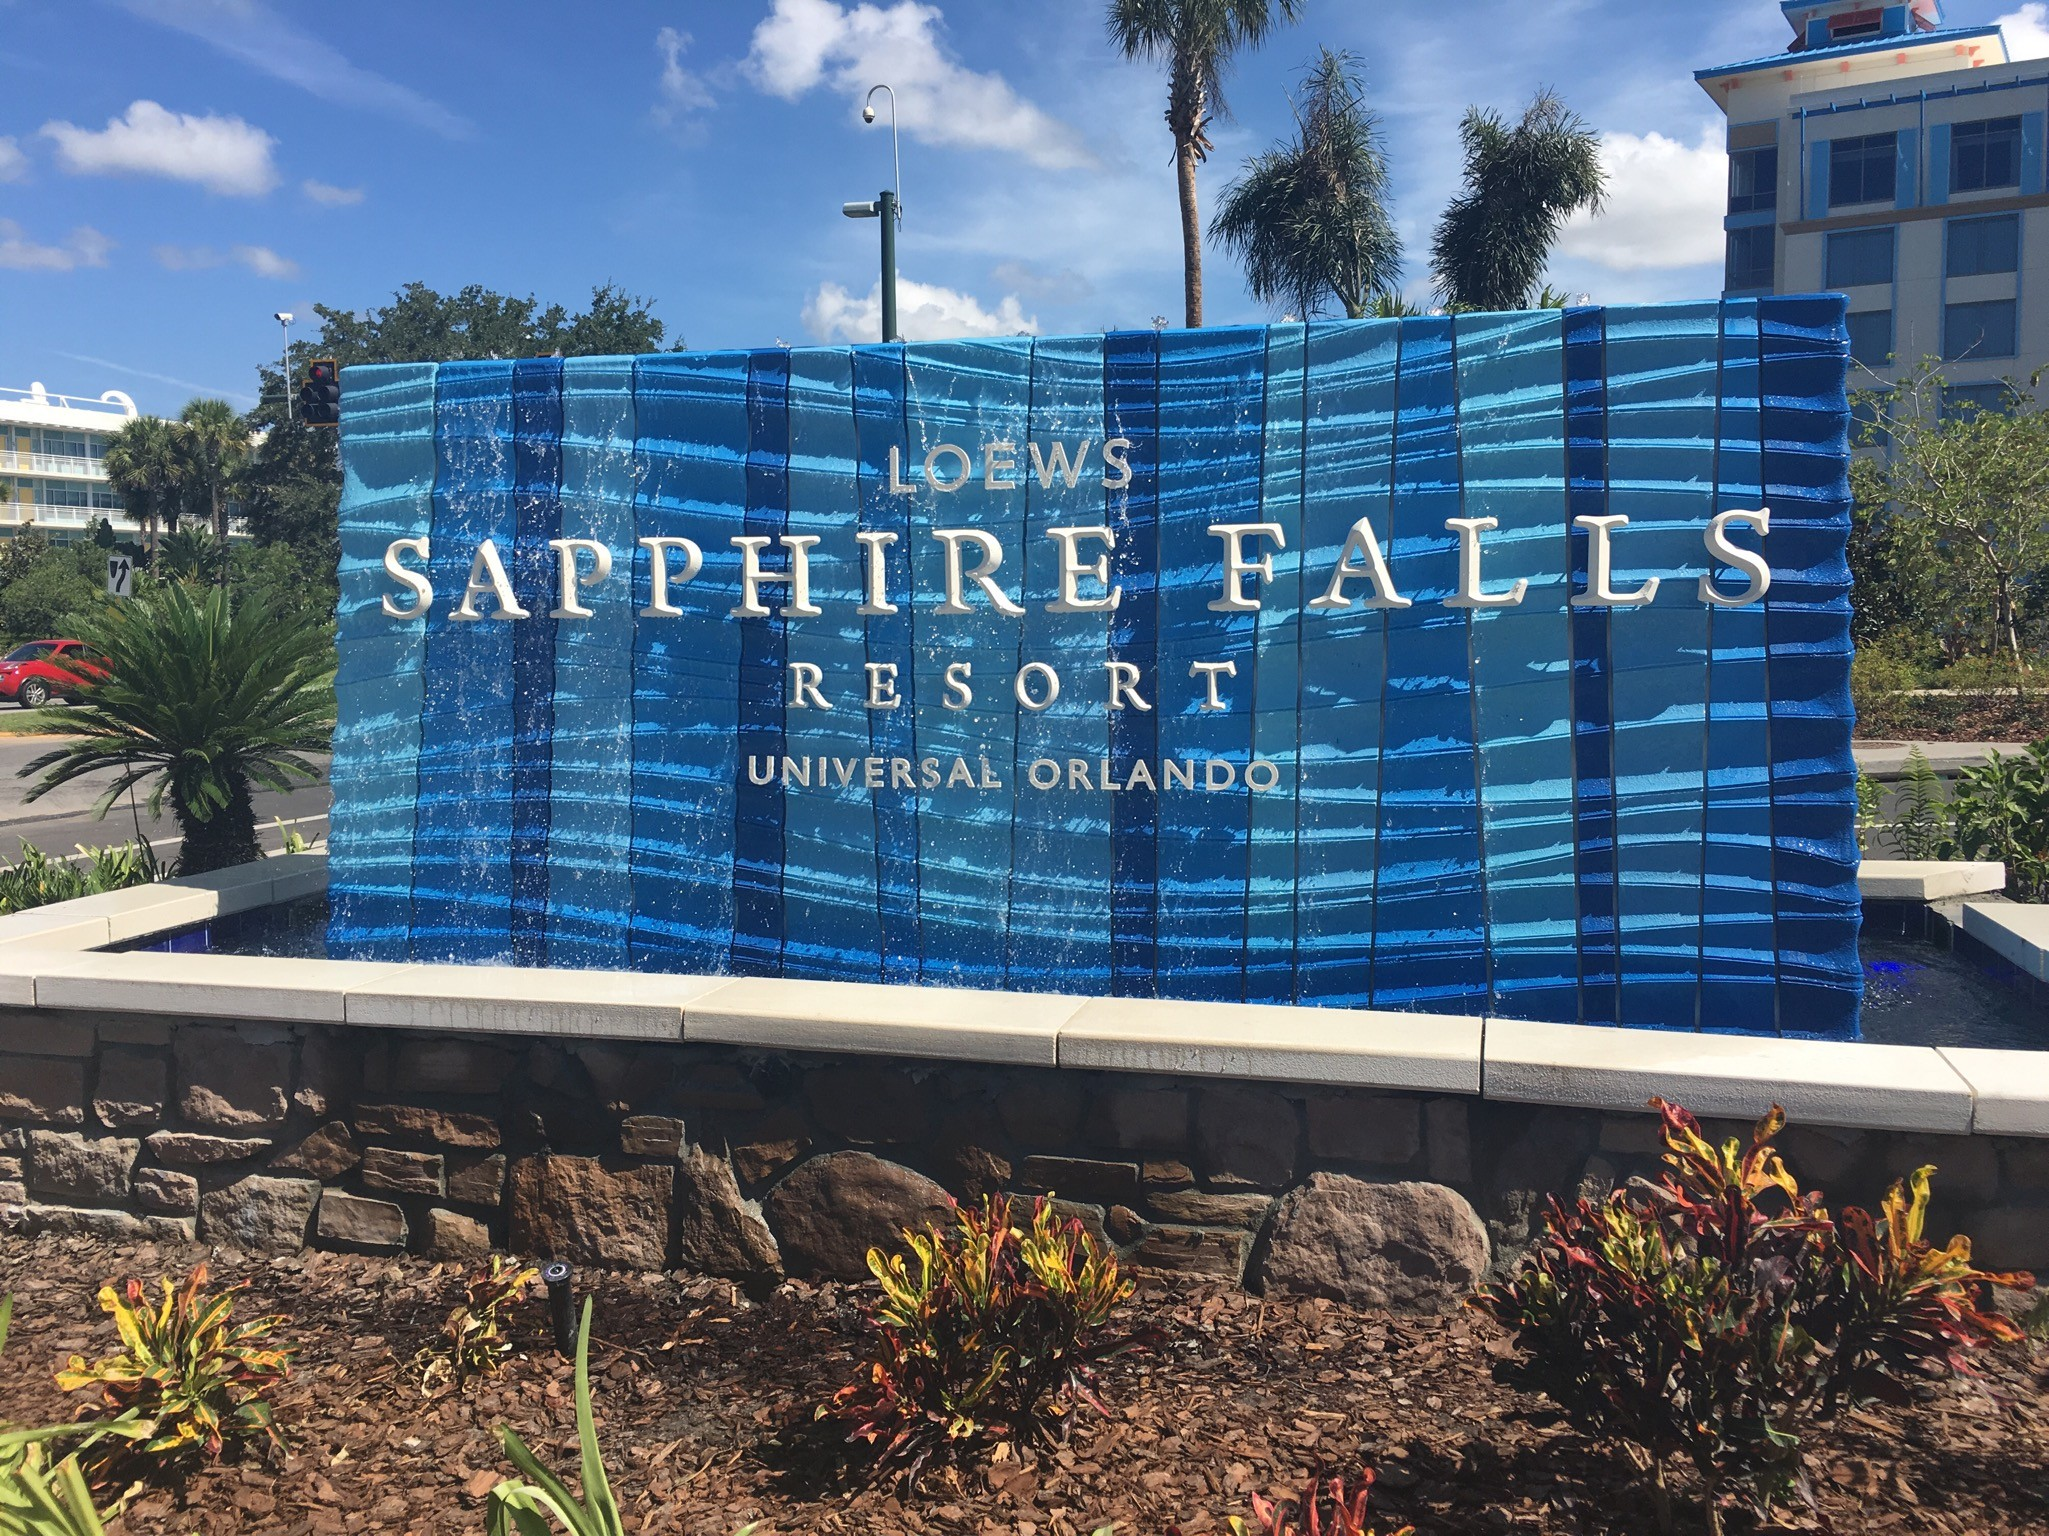 Loews Shire Falls Resort At Universal Orlando Is Now Open To Guests But That Doesn T Mean It S Entirely Finished Photos By Seth Kubersky